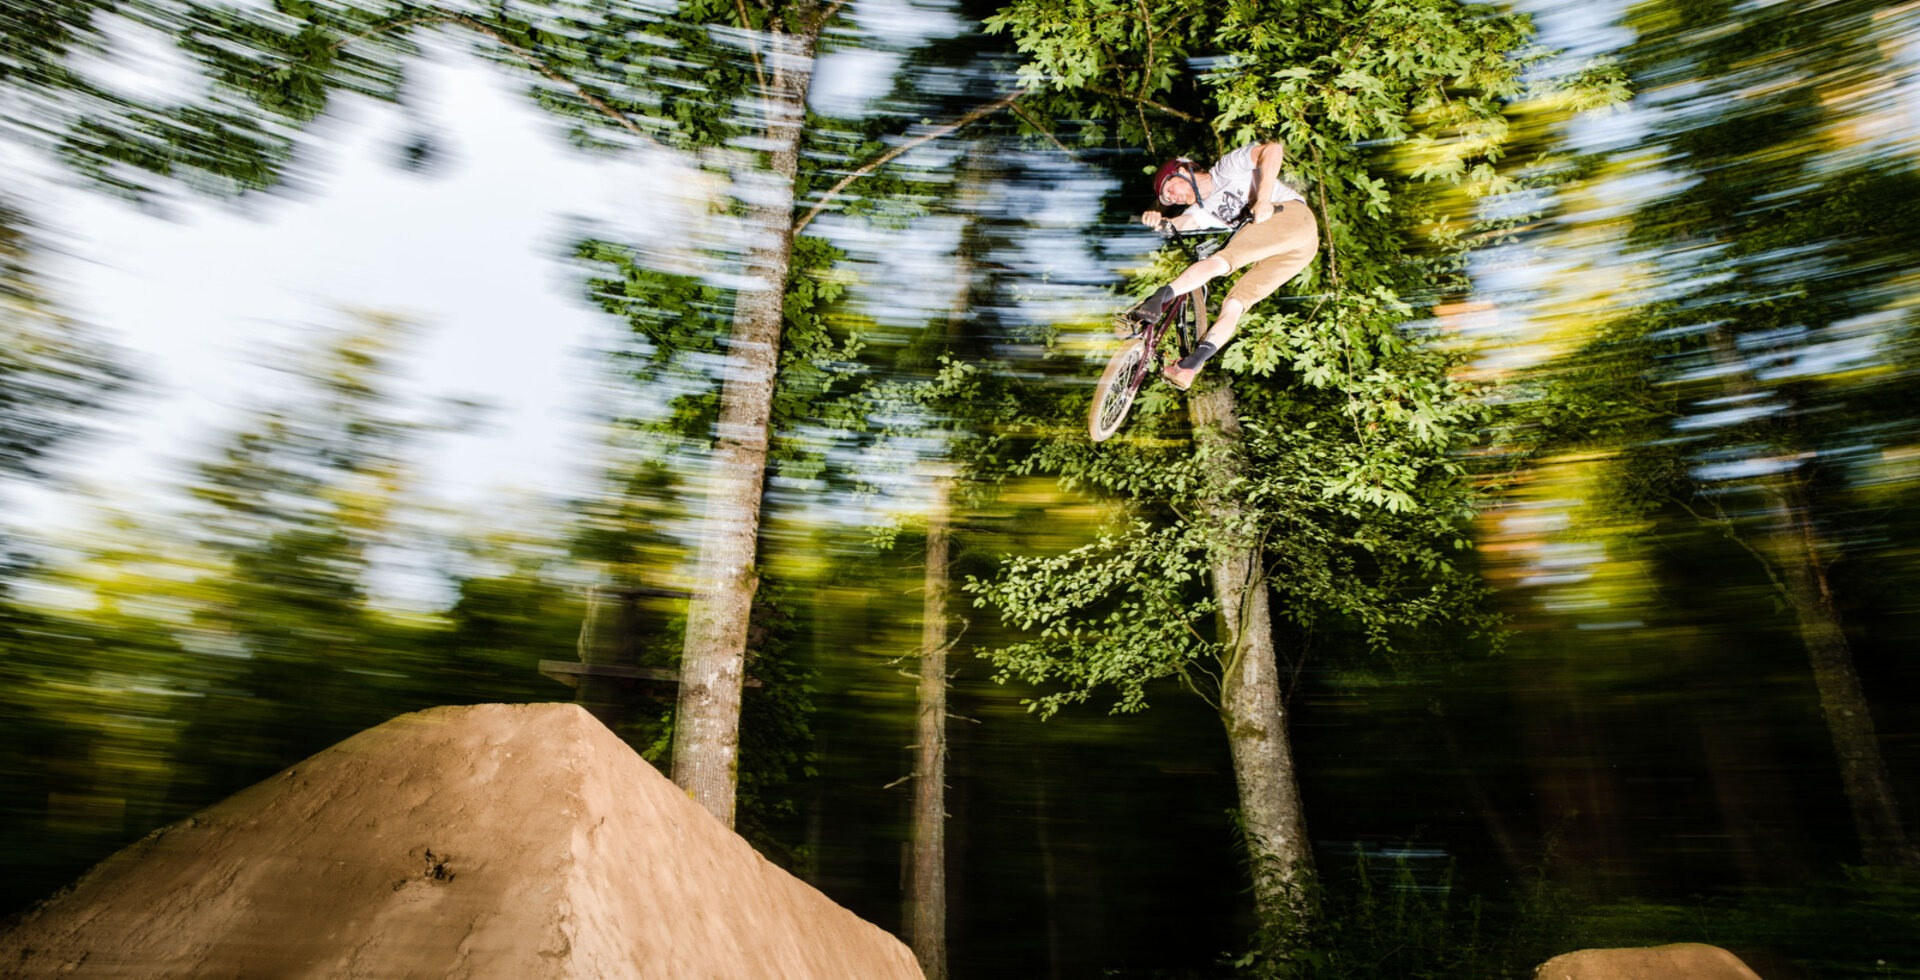 Scott Scamehorn on the Megaladon jump on Main Line.